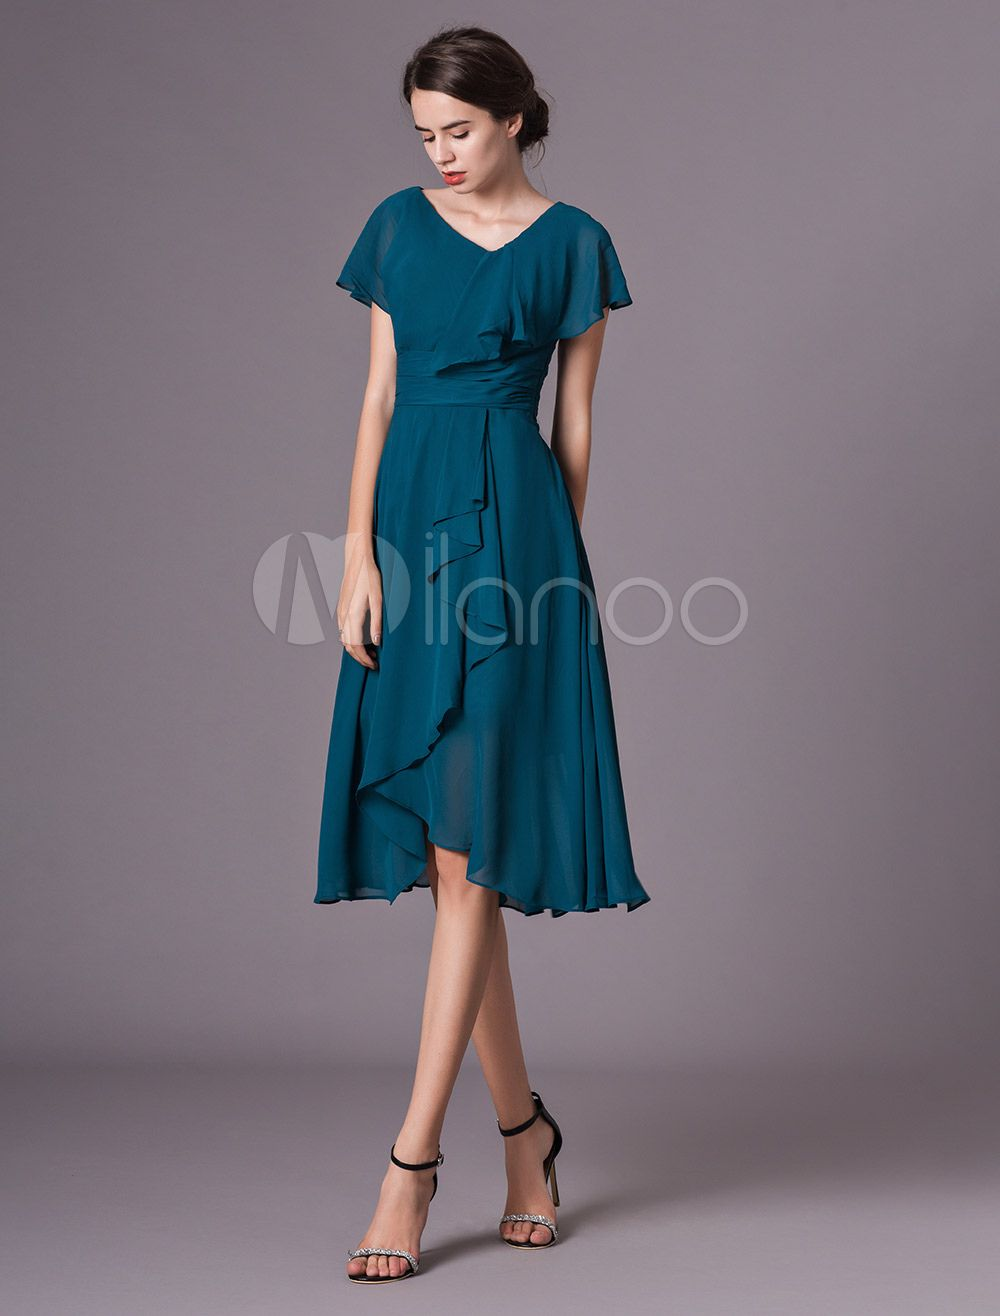 028ea3bfabe Wedding Guest Dress Ink Blue Short Sleeve V Neck Chiffon Ruffles Mother  Dress